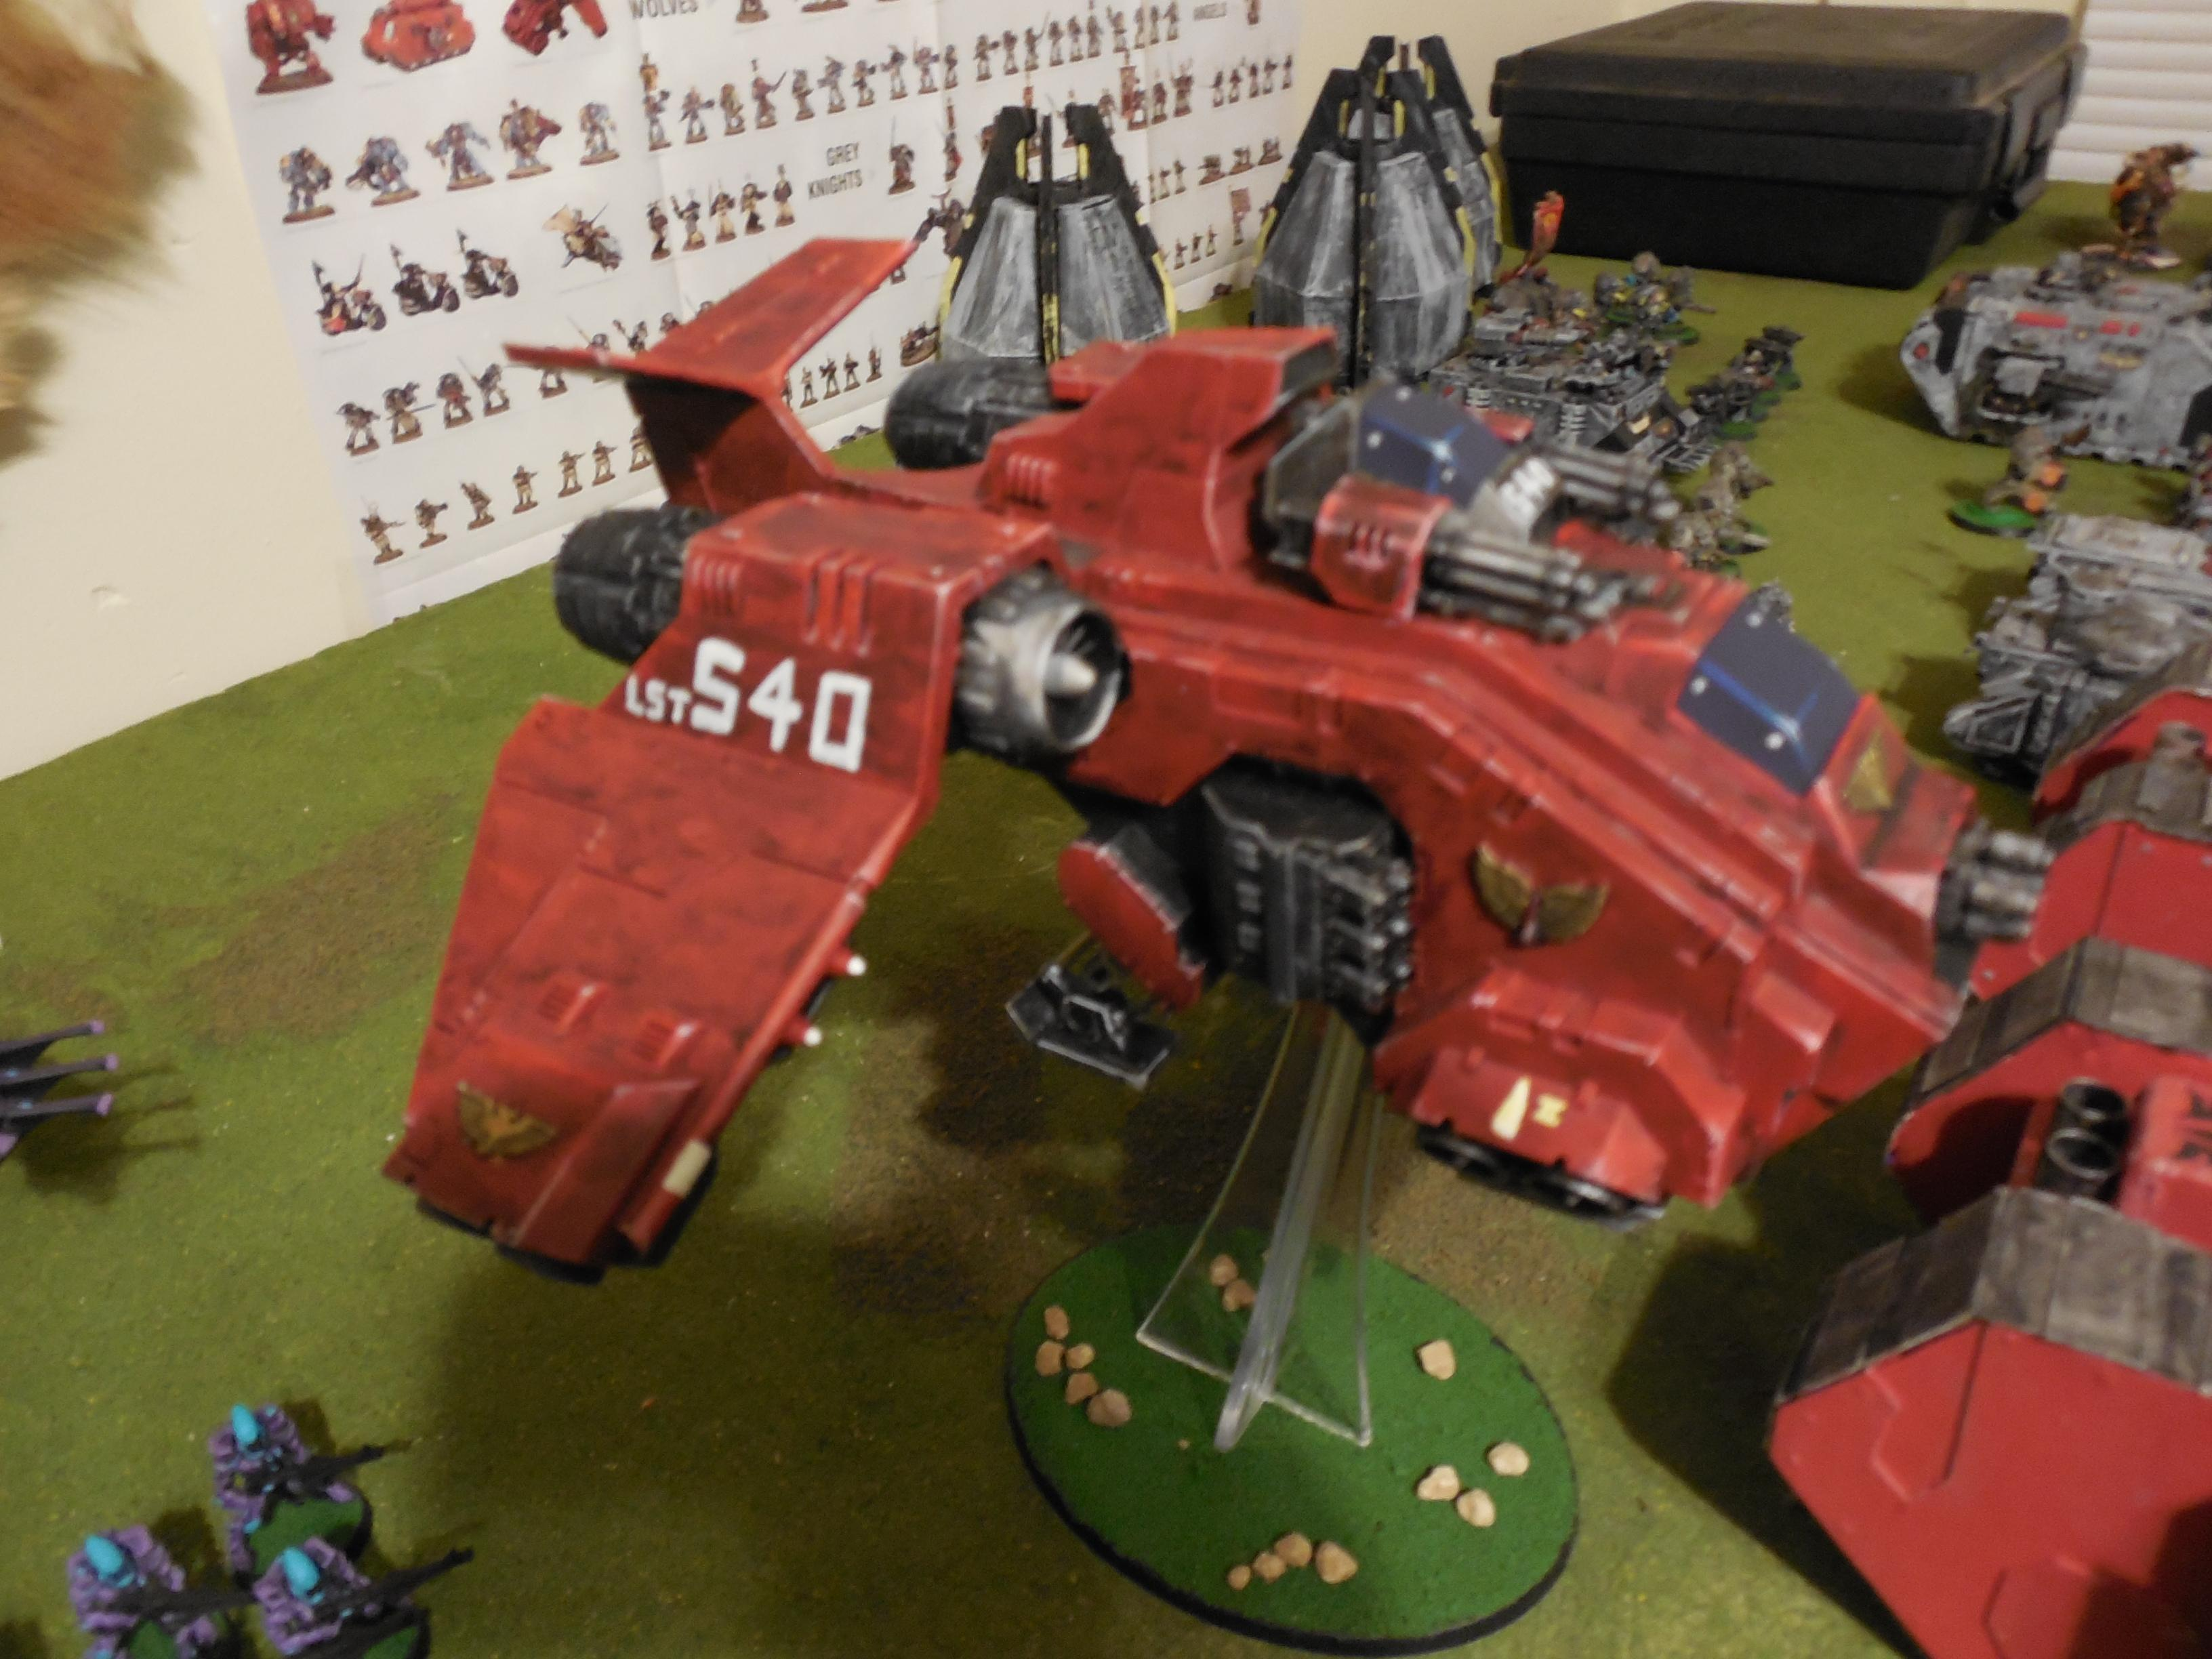 2nd Company Blood Angels, Blood Angels, Captain Aphiel, Dreadnought, Land Raider, Mephiston, Scratch Built Land Raiders, Space Marines, Storm Raven, The Blooded